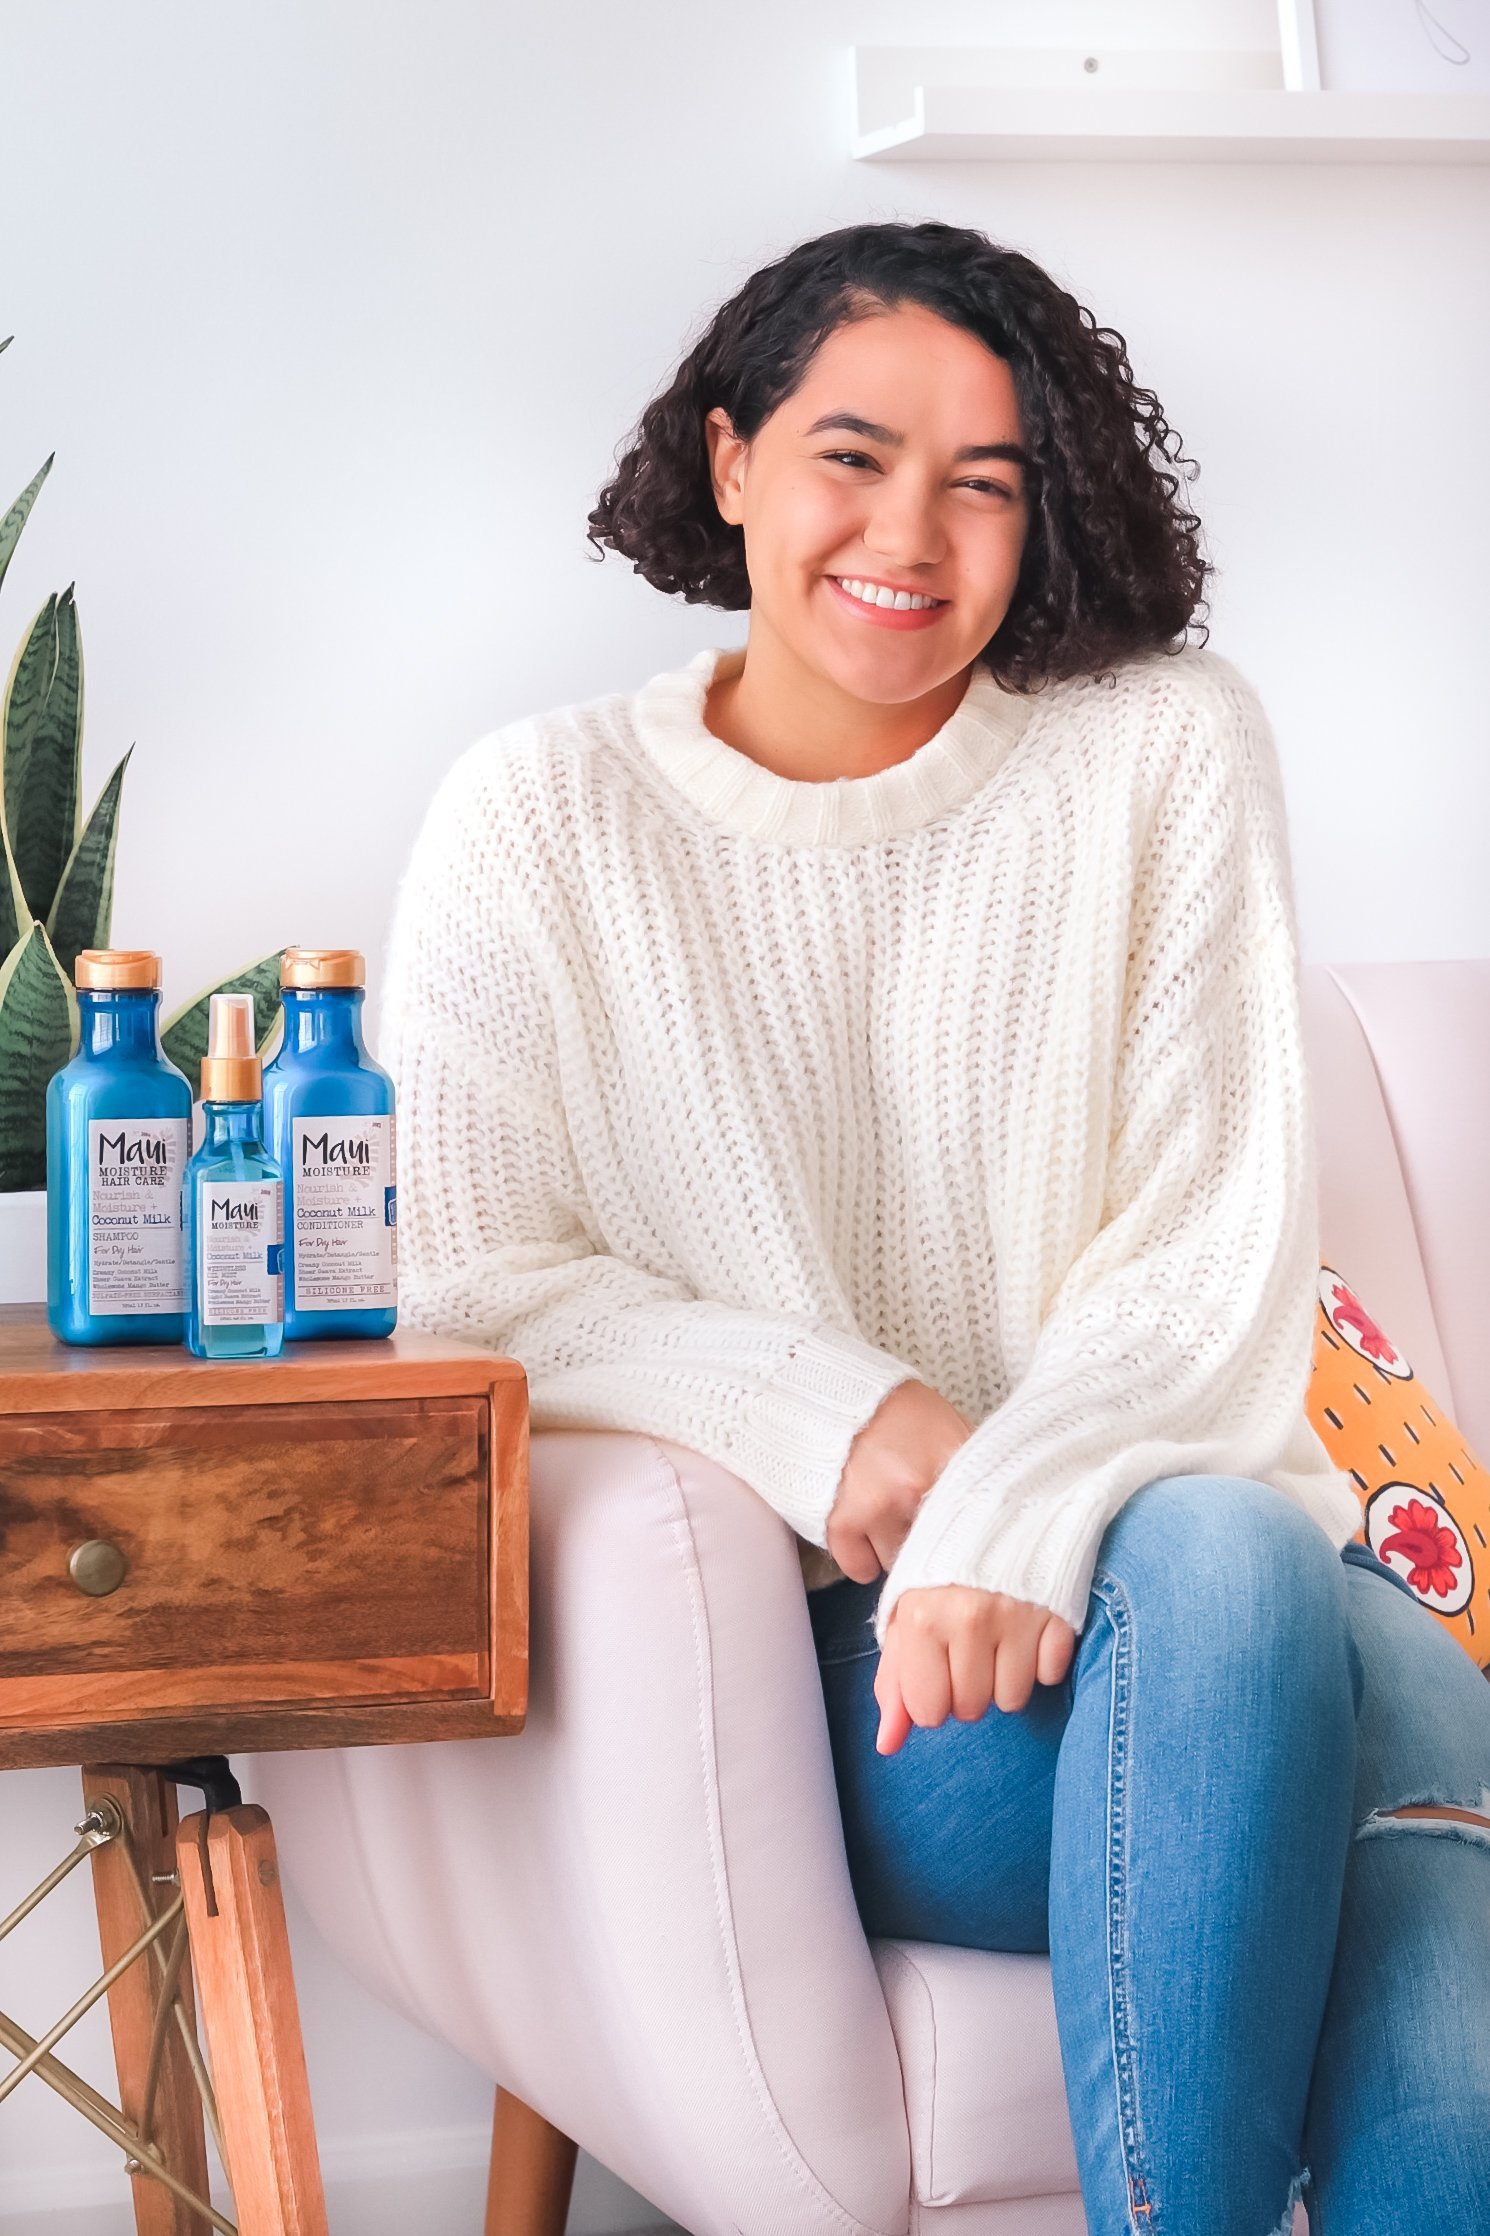 girl sitting on couch with maui moisture products next to her